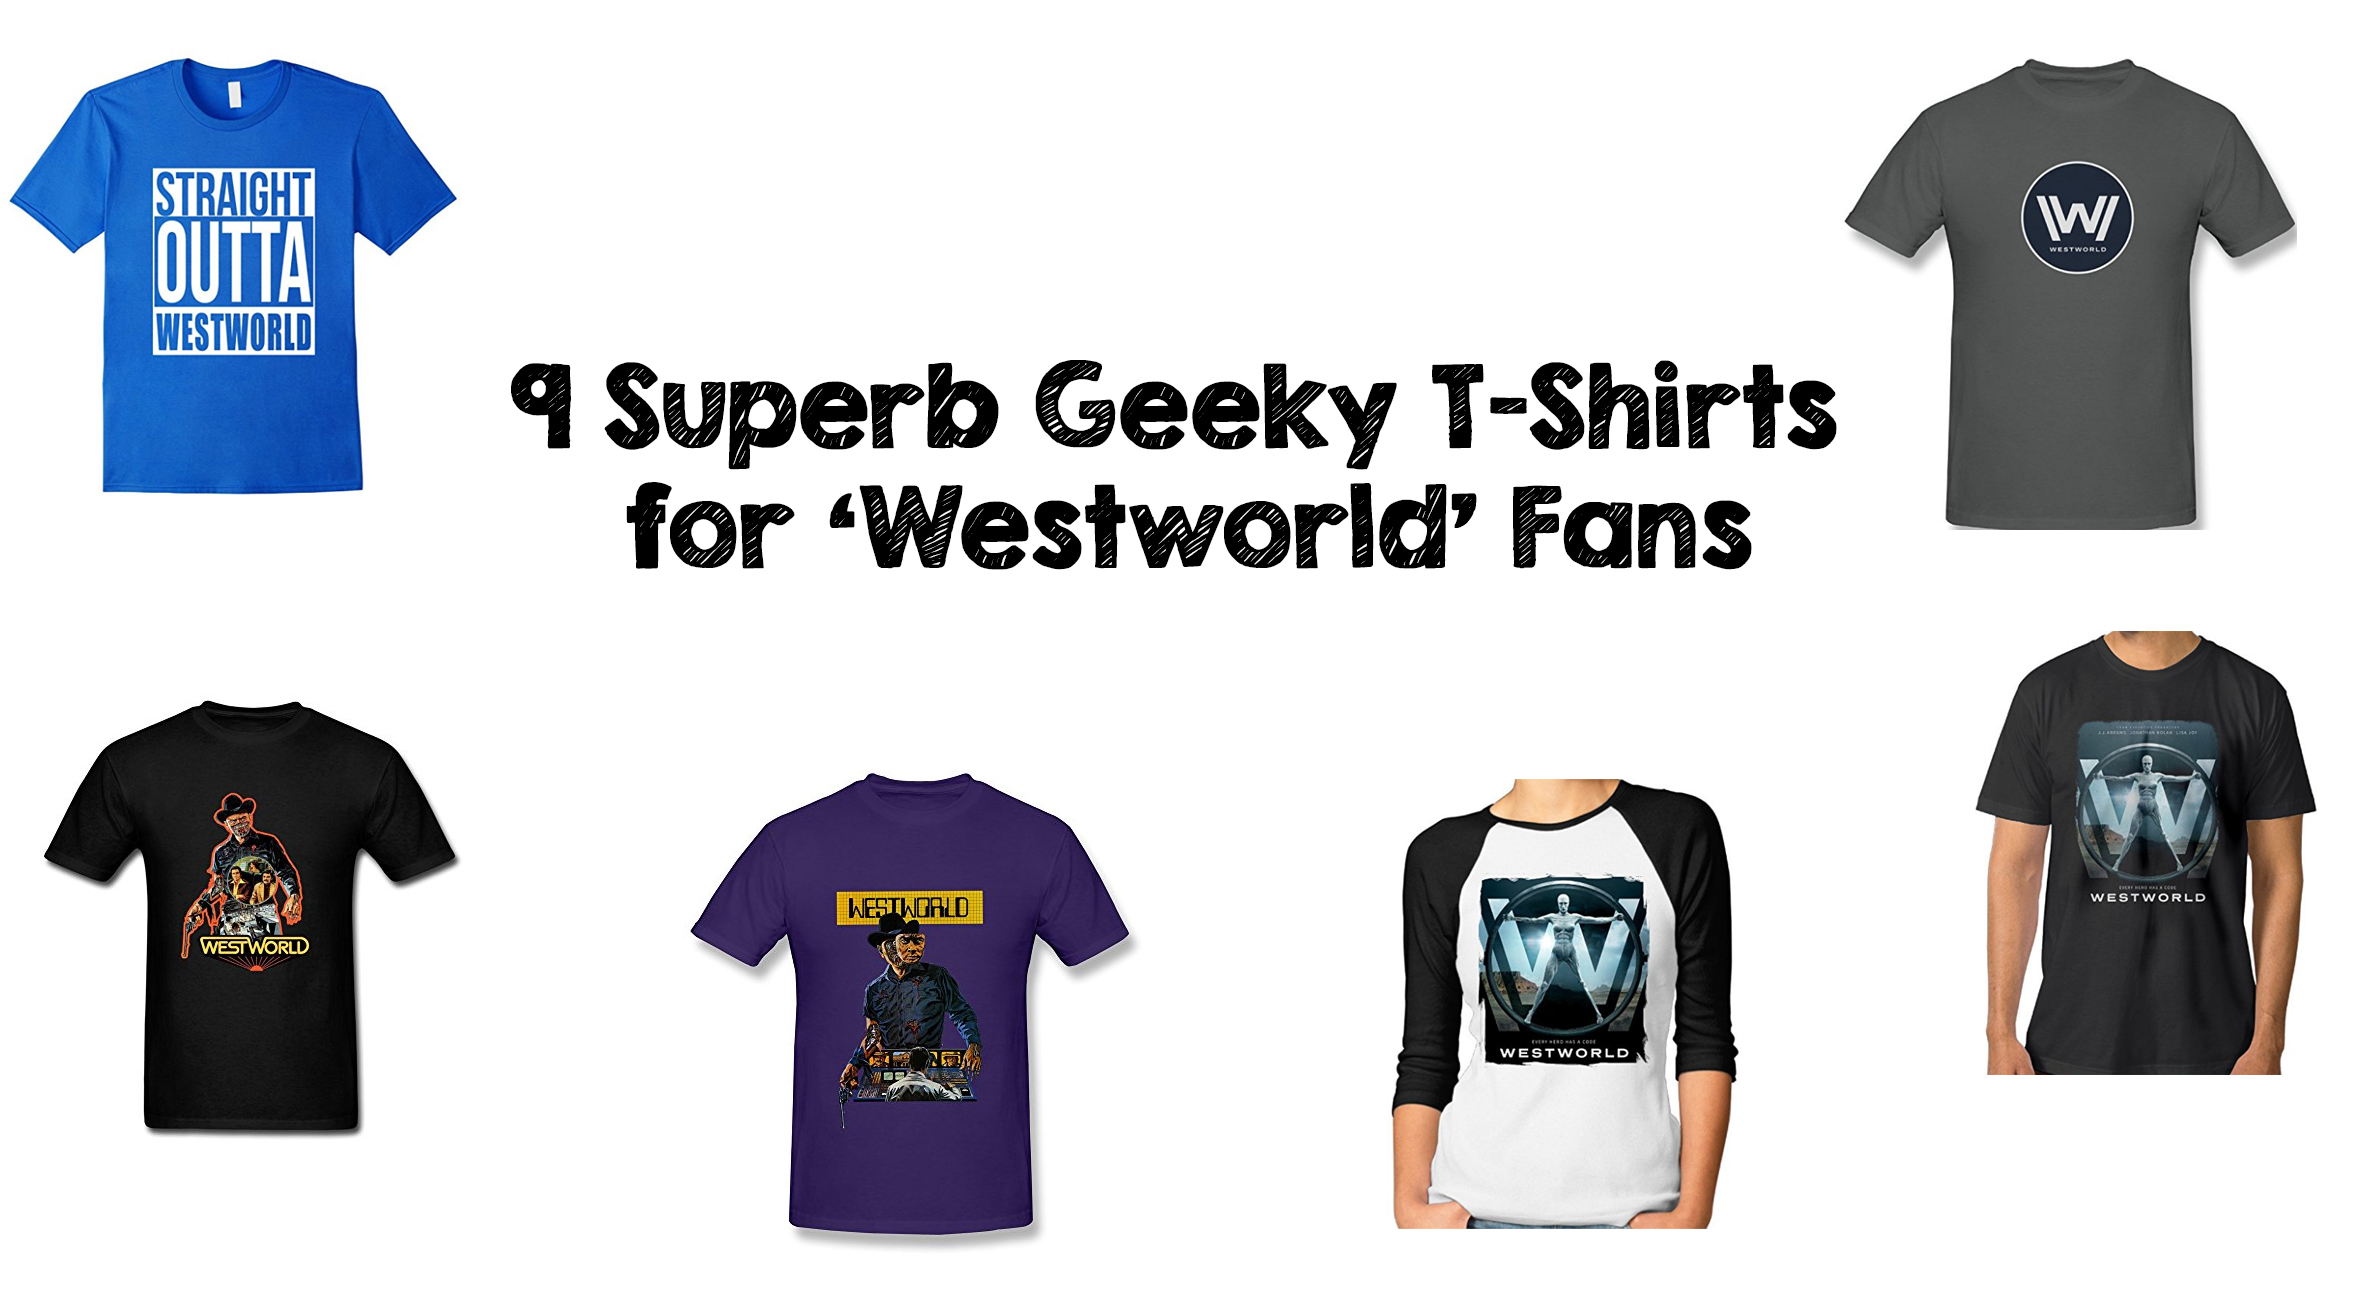 9 Superb Geeky T-Shirts for 'Westworld' Fans